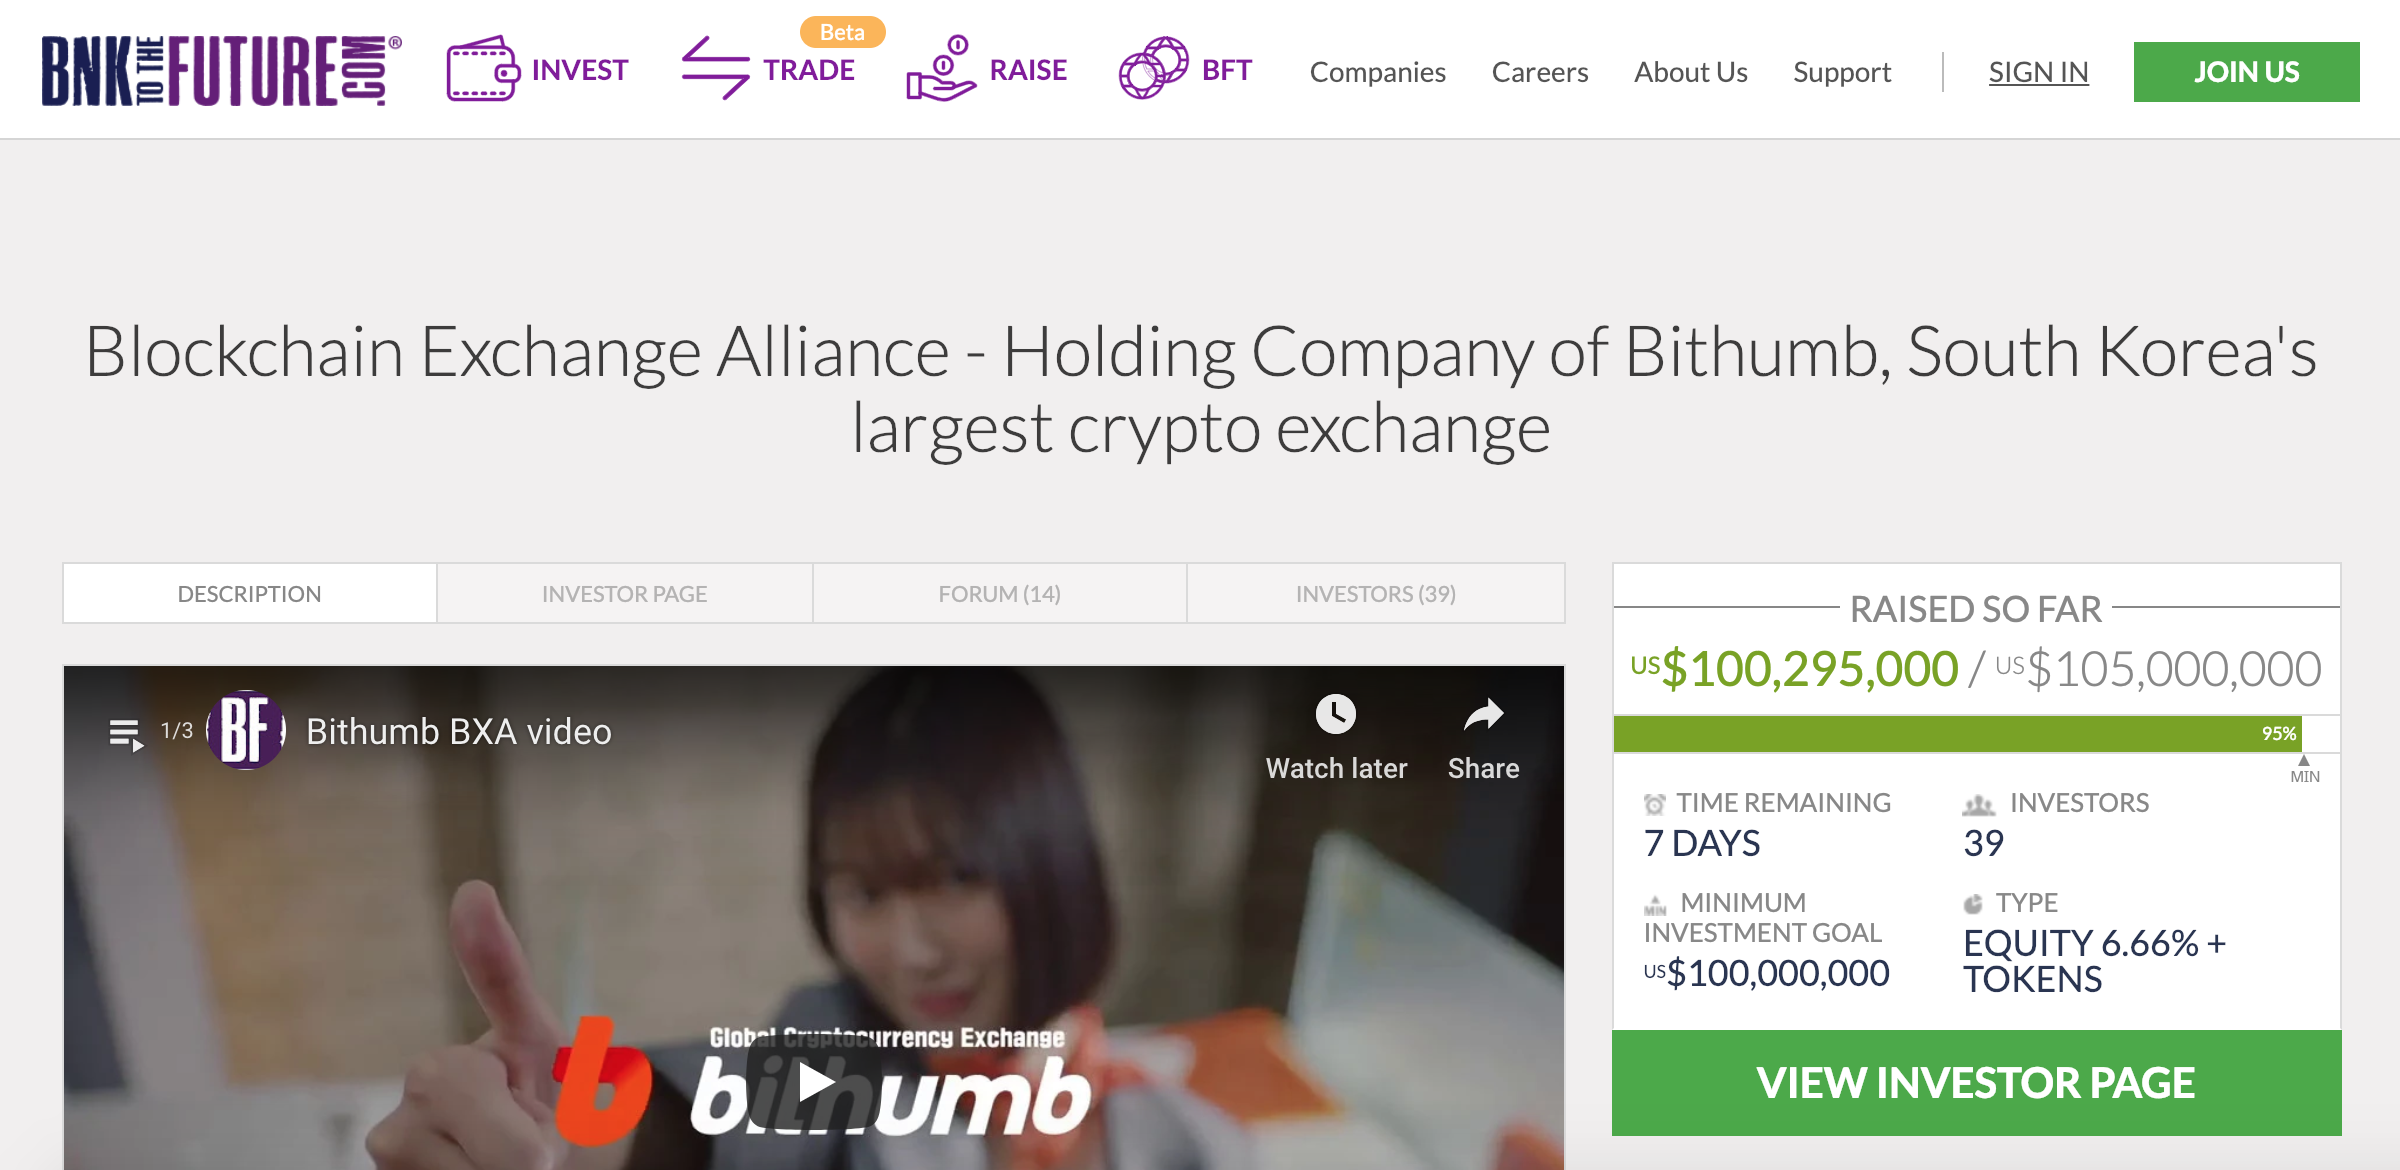 Bithumb Holding Company Looks to Raise US$100M in Equity Crowdfunding Campaign